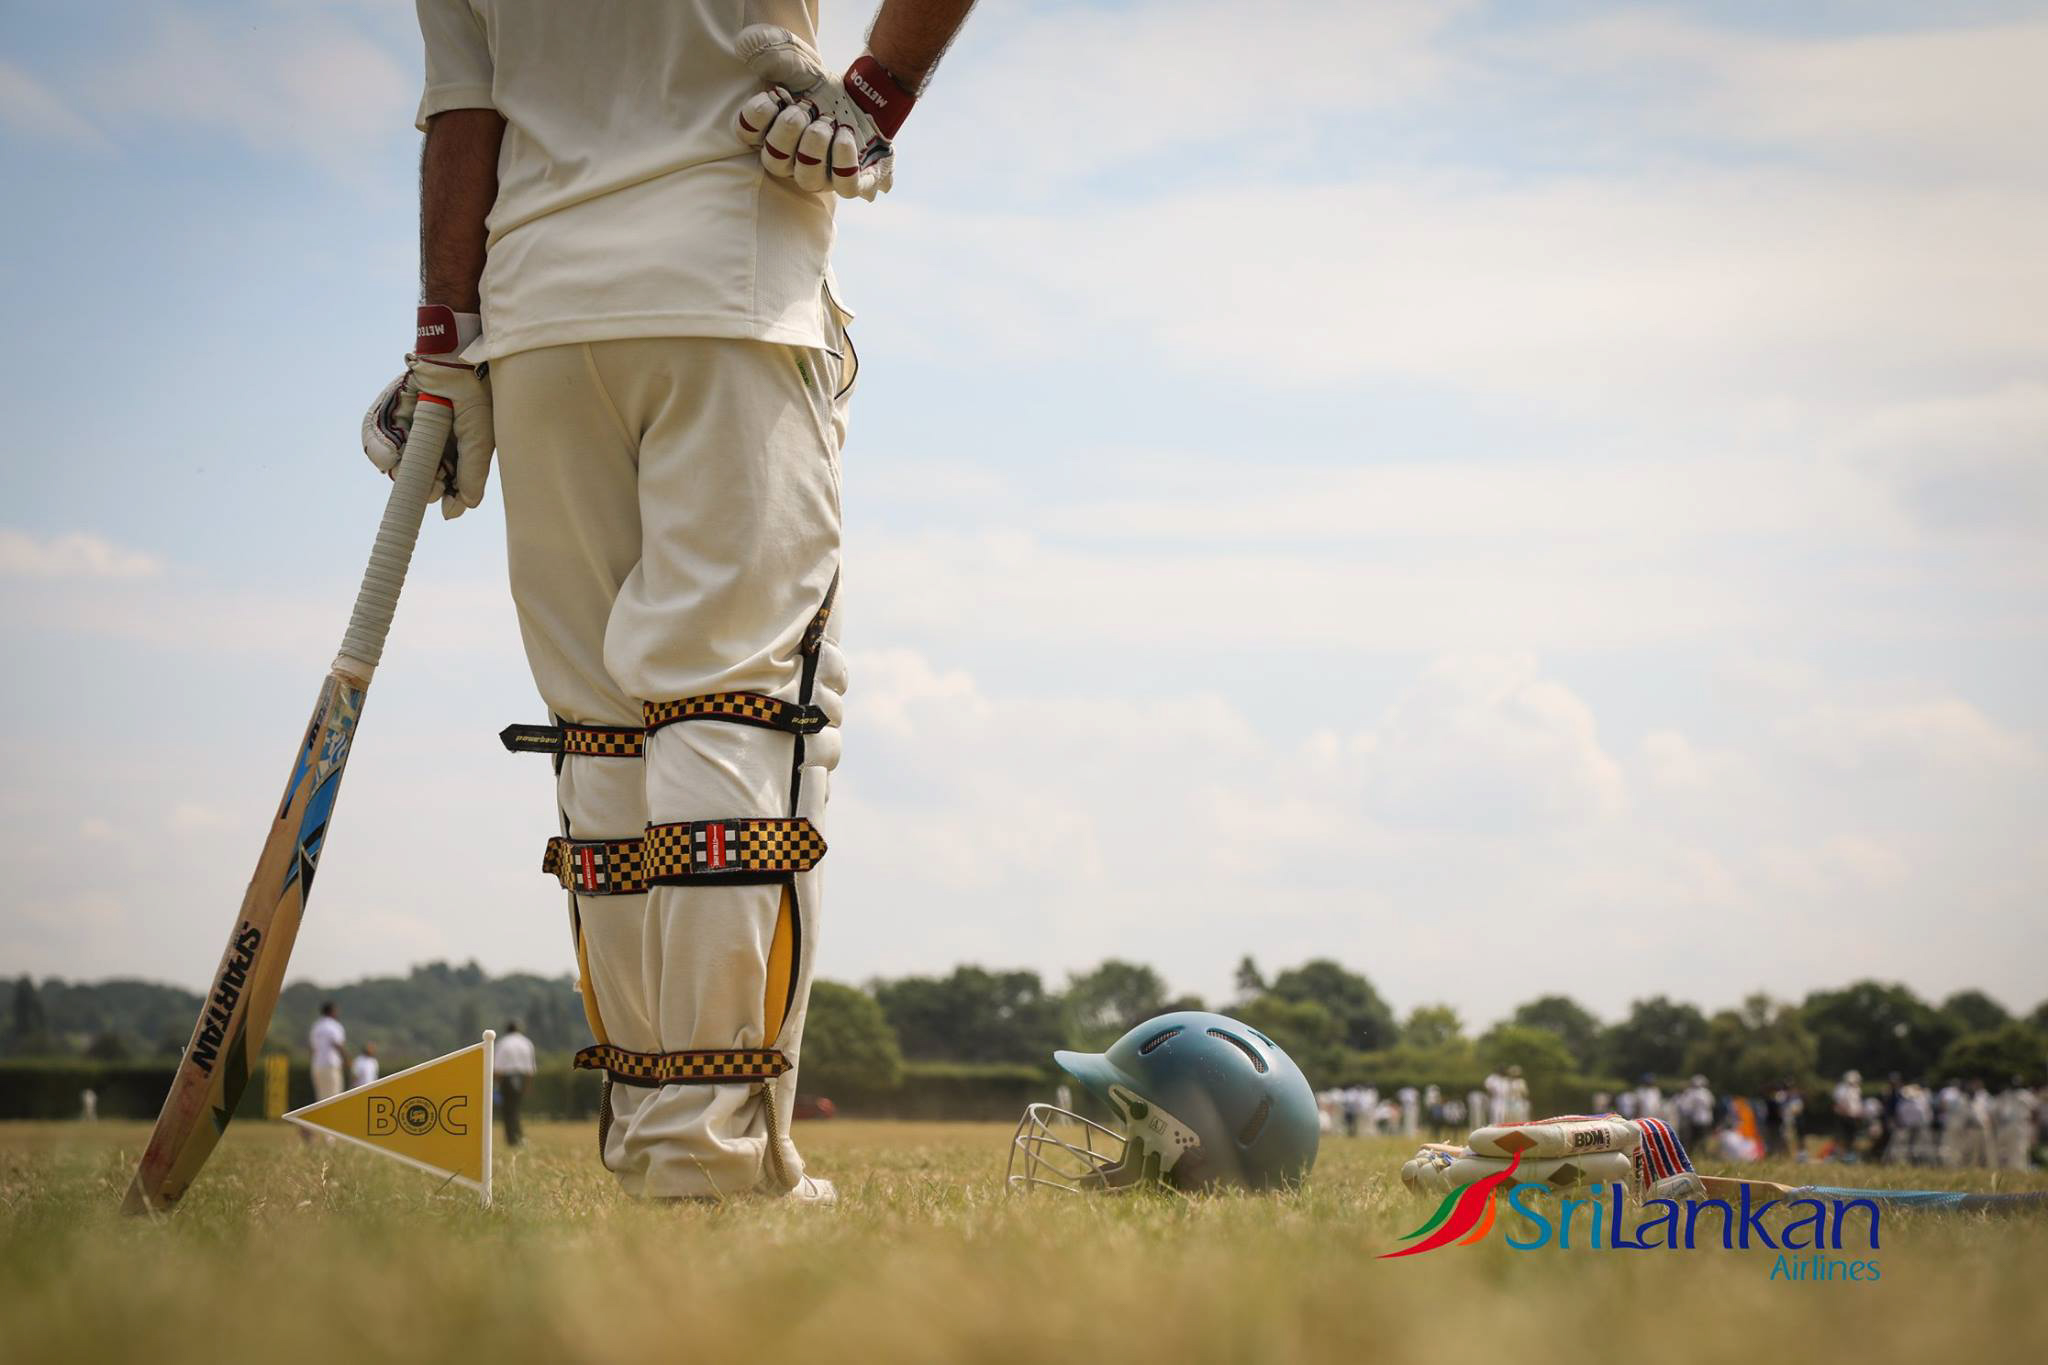 Festival of Cricket 2017 - Sri-Lankan Airlines | London